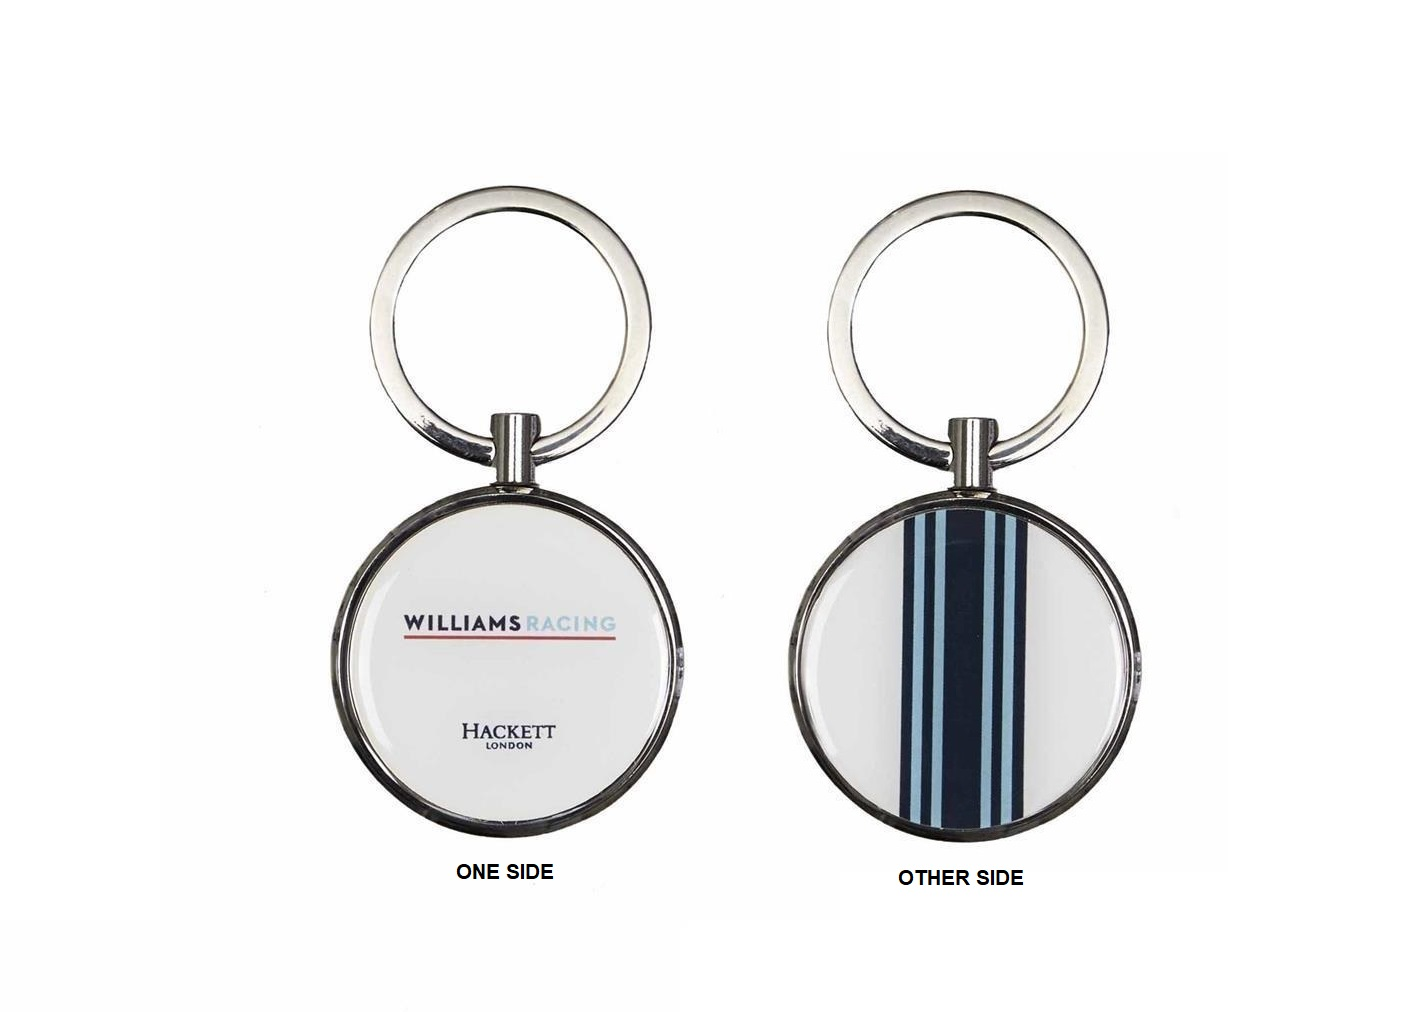 Hackett White Enameled Keychain Keyring Williams Martini F1 Formula One 1 New Archives Statelegals Staradvertiser Com